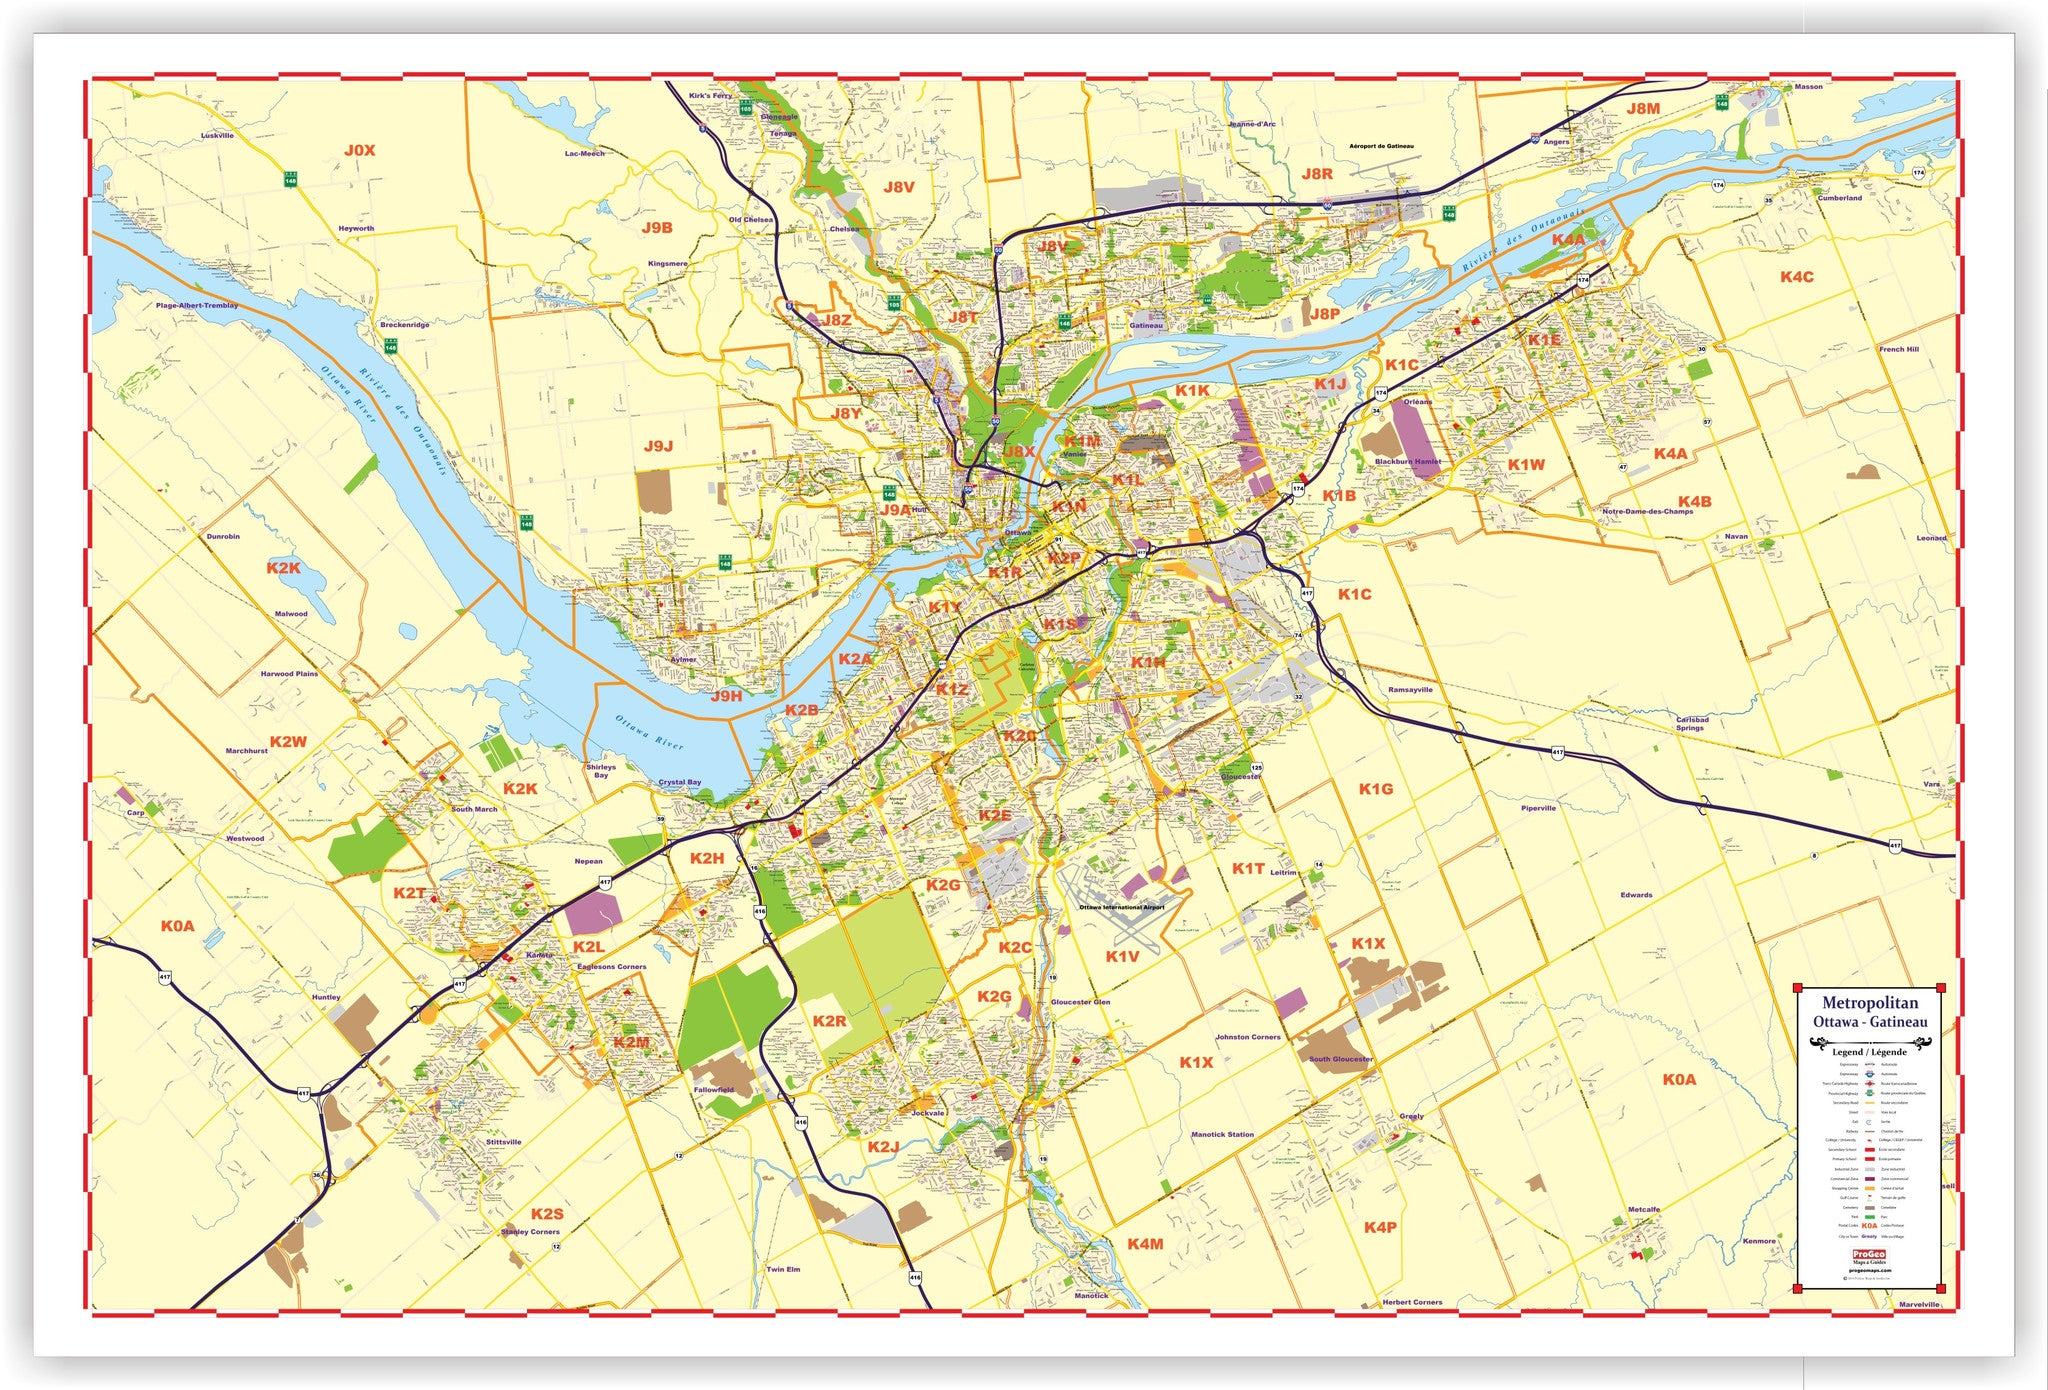 Progeo marketing map of ottawa and gatineau surroundings laminated please upgrade to full version of magic zoom plus progeo marketing map of ottawa gumiabroncs Gallery